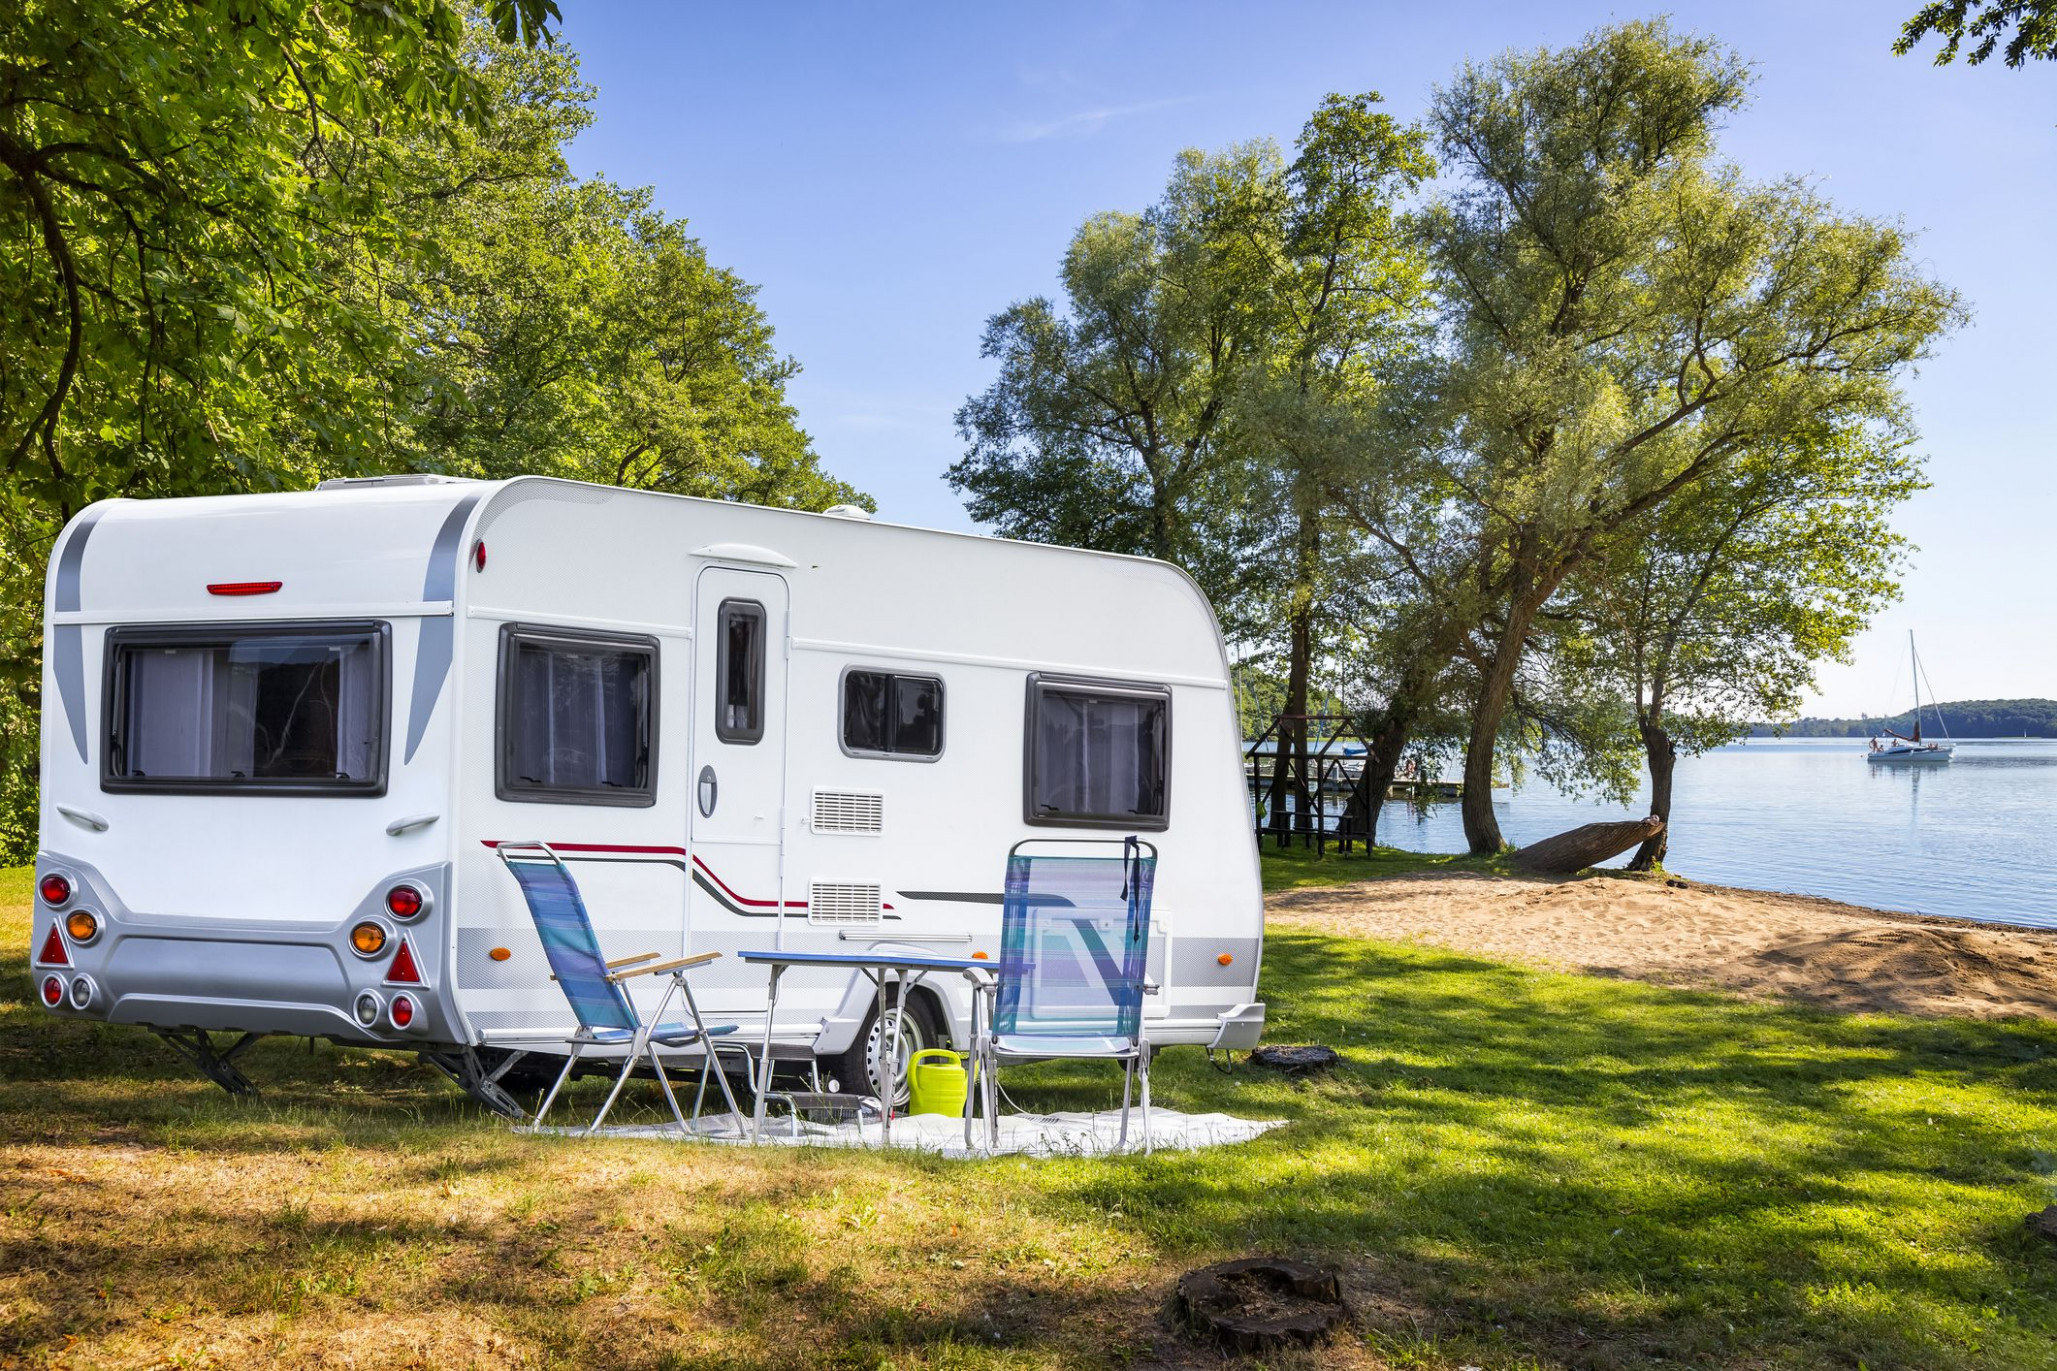 Should You Cover Your Camper Trailer With A Tarp? Camper Carport Ideas